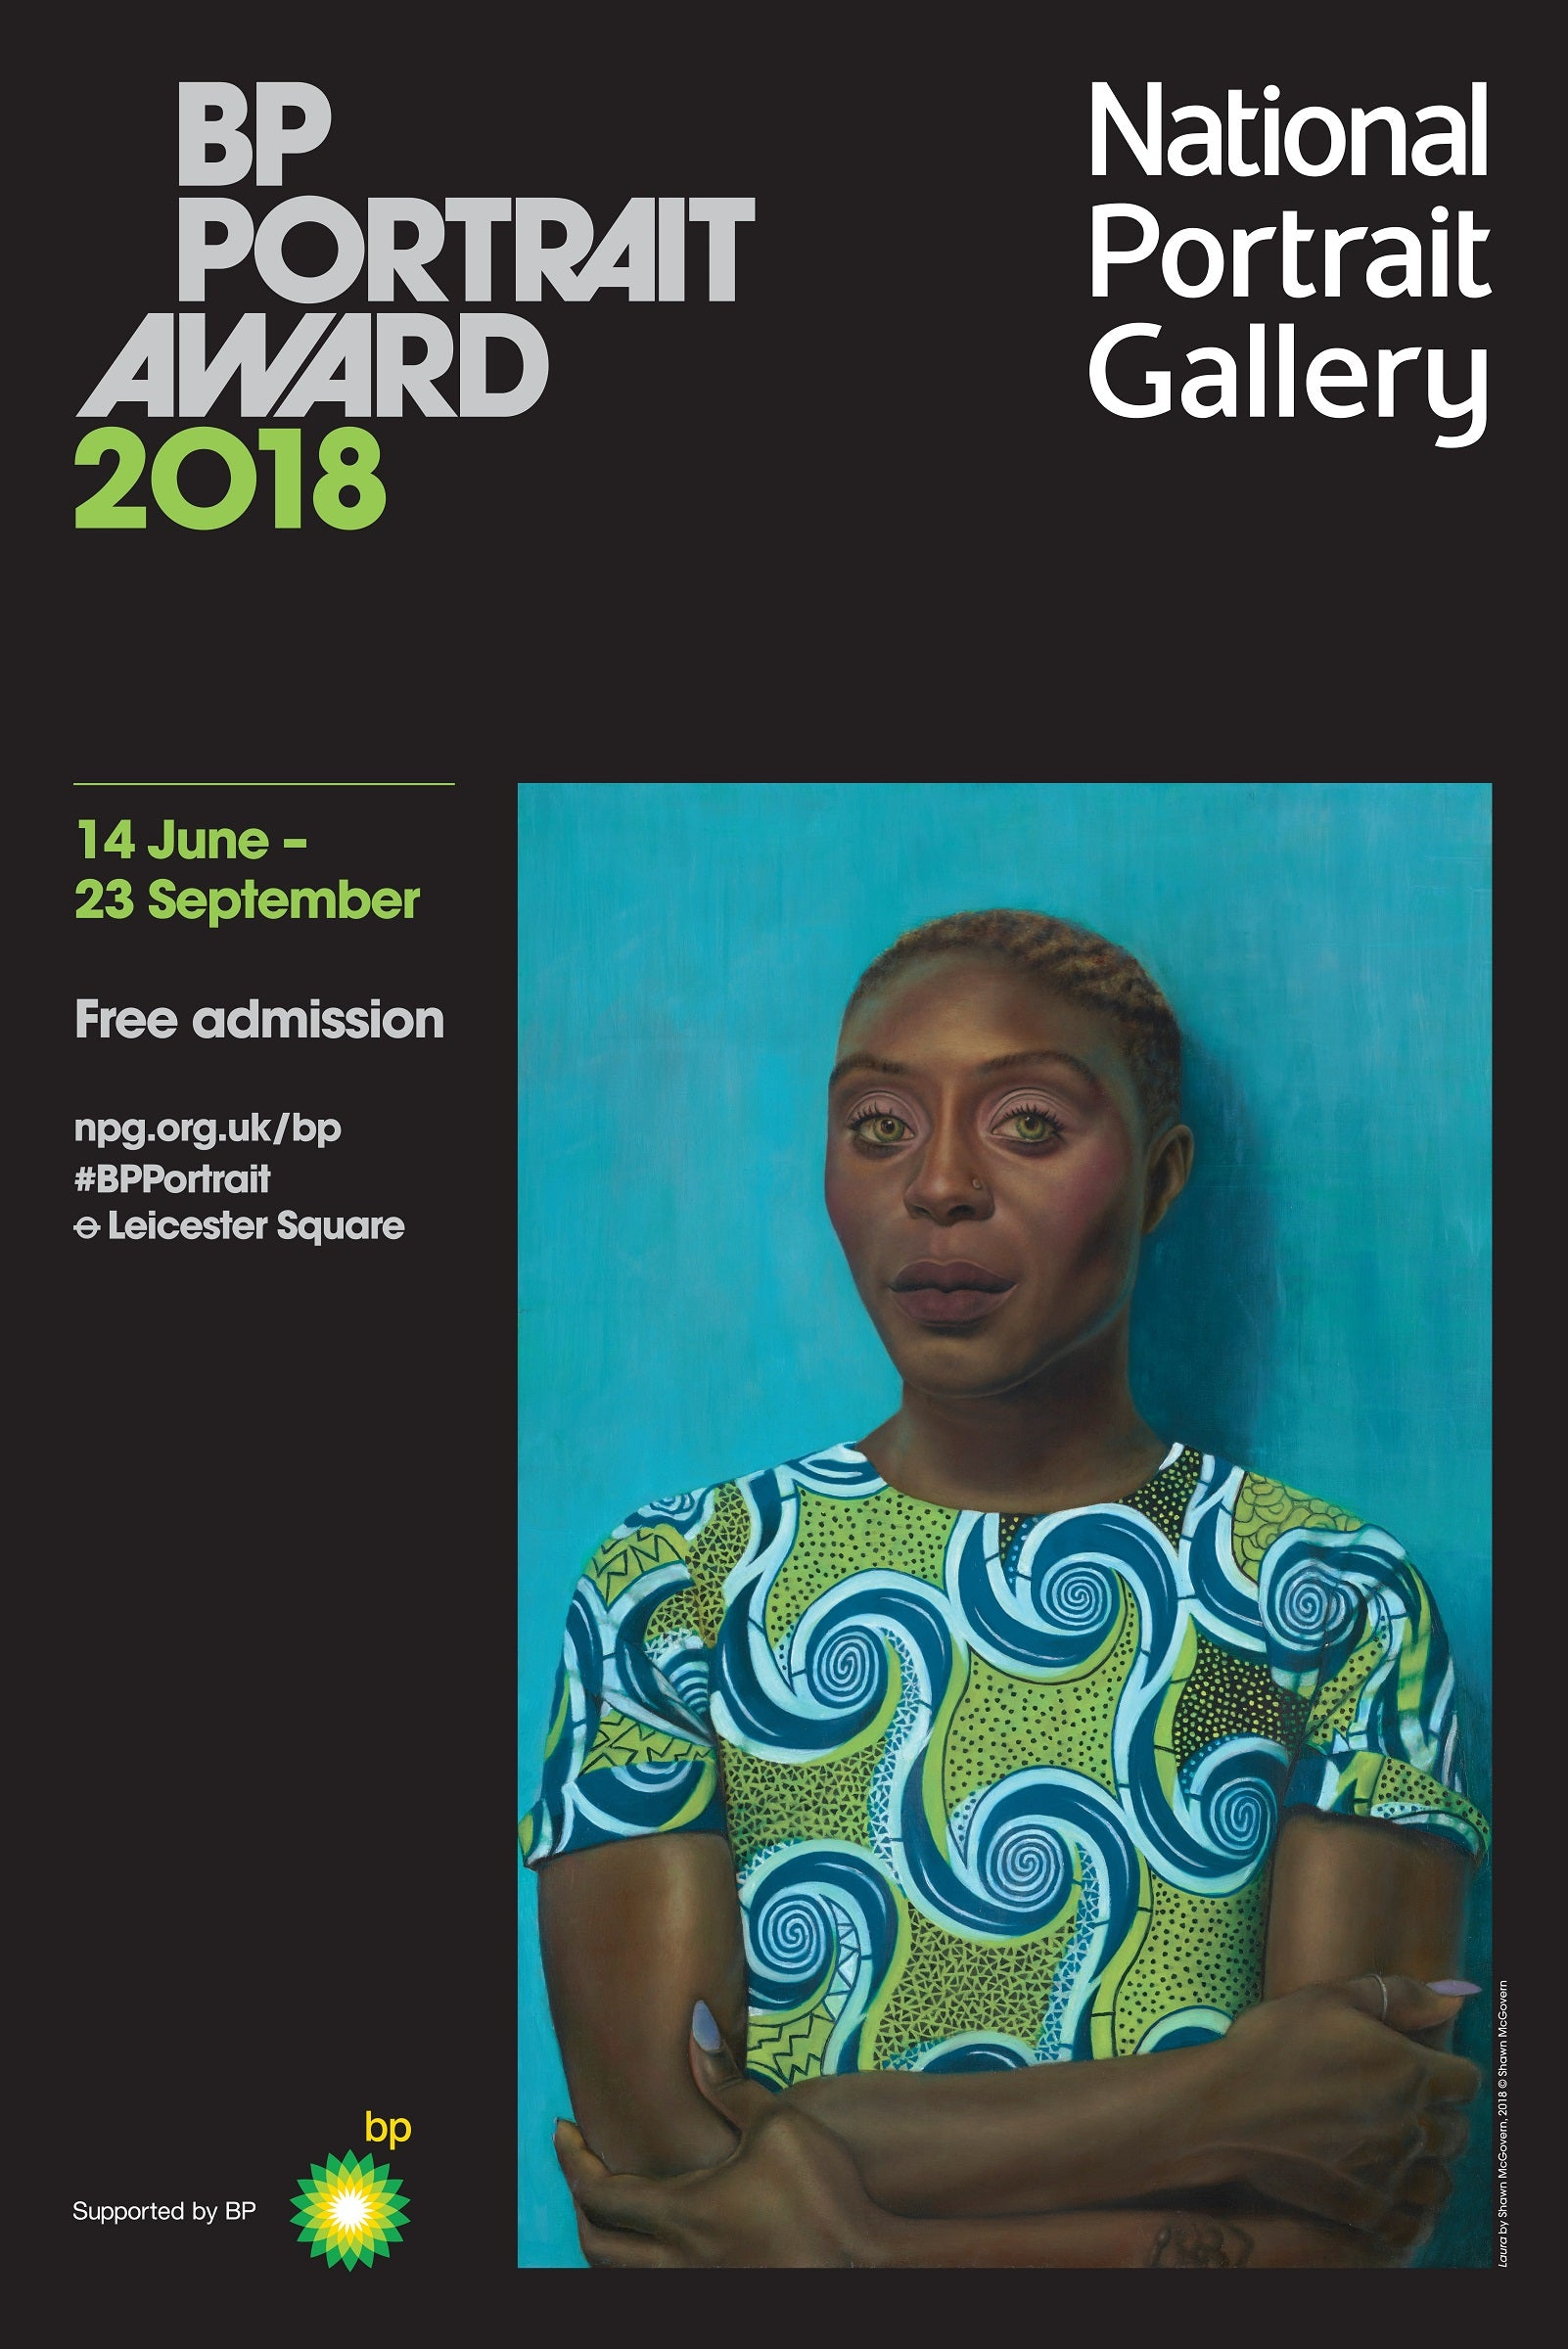 BP Portrait Award 2018 Exhibition Poster